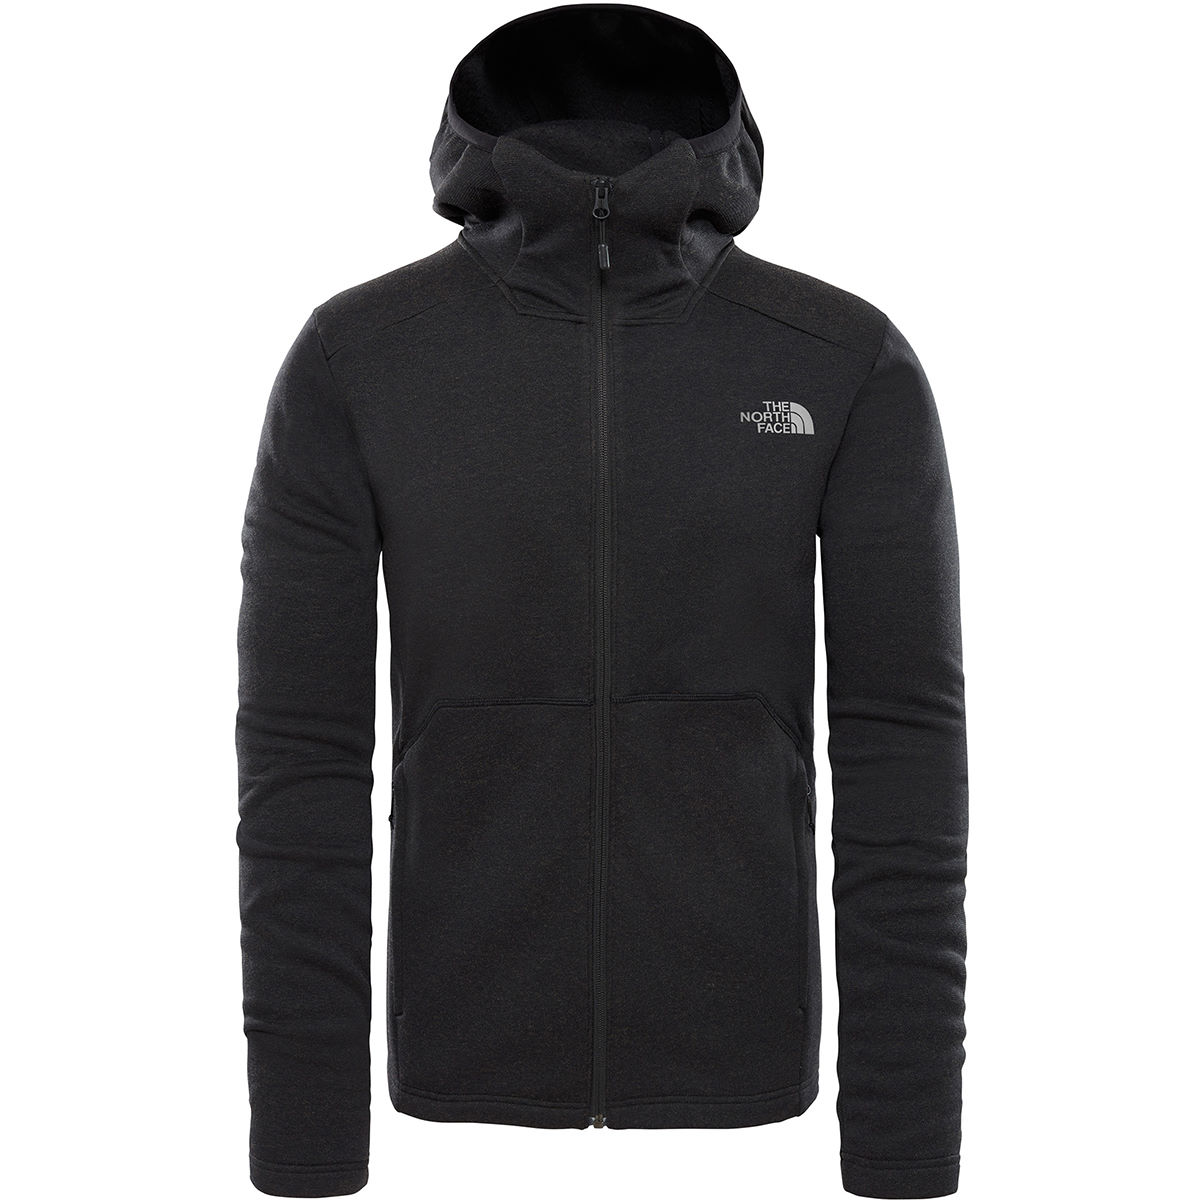 The North Face Tekari Hoodie   Hoodies